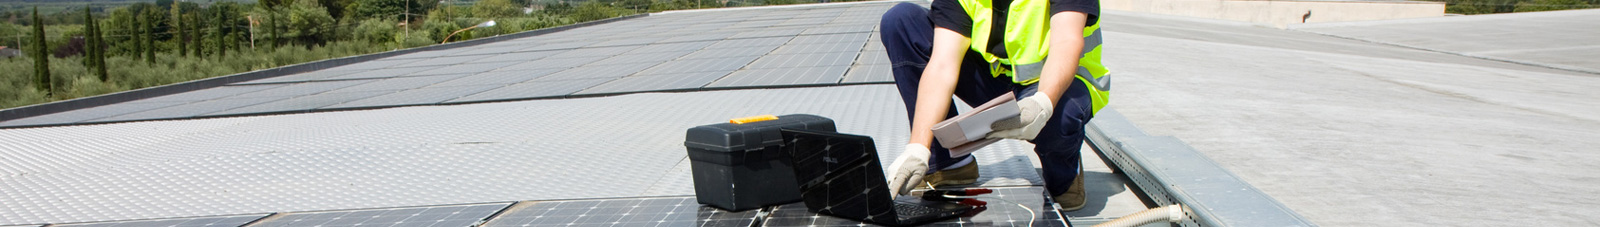 Solar Panel  Inverter Installation Guide Chiltern Solar